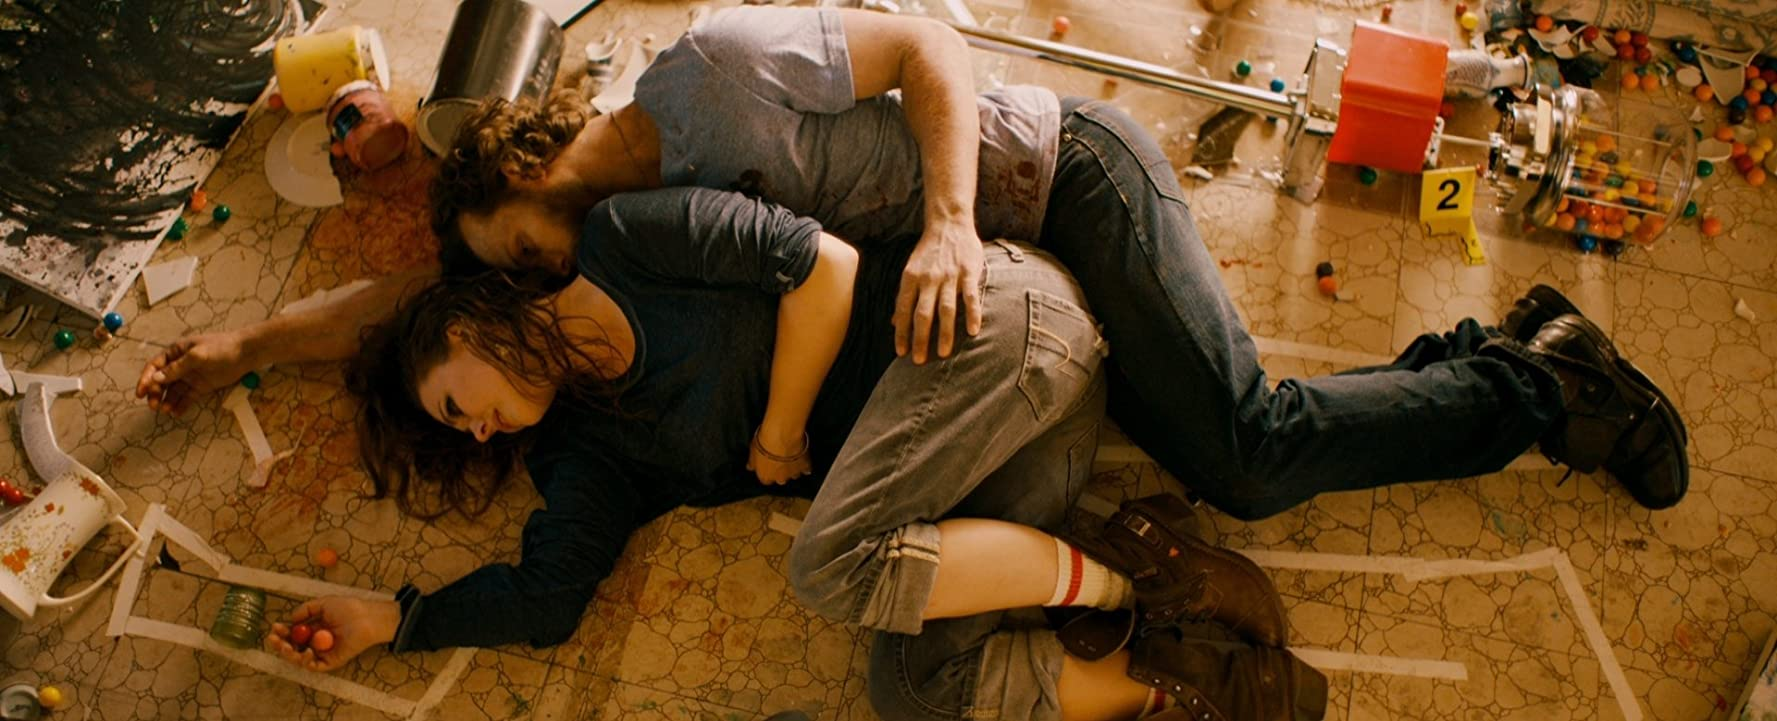 Still of Katharine Isabelle and Kyle Schmid in 88.